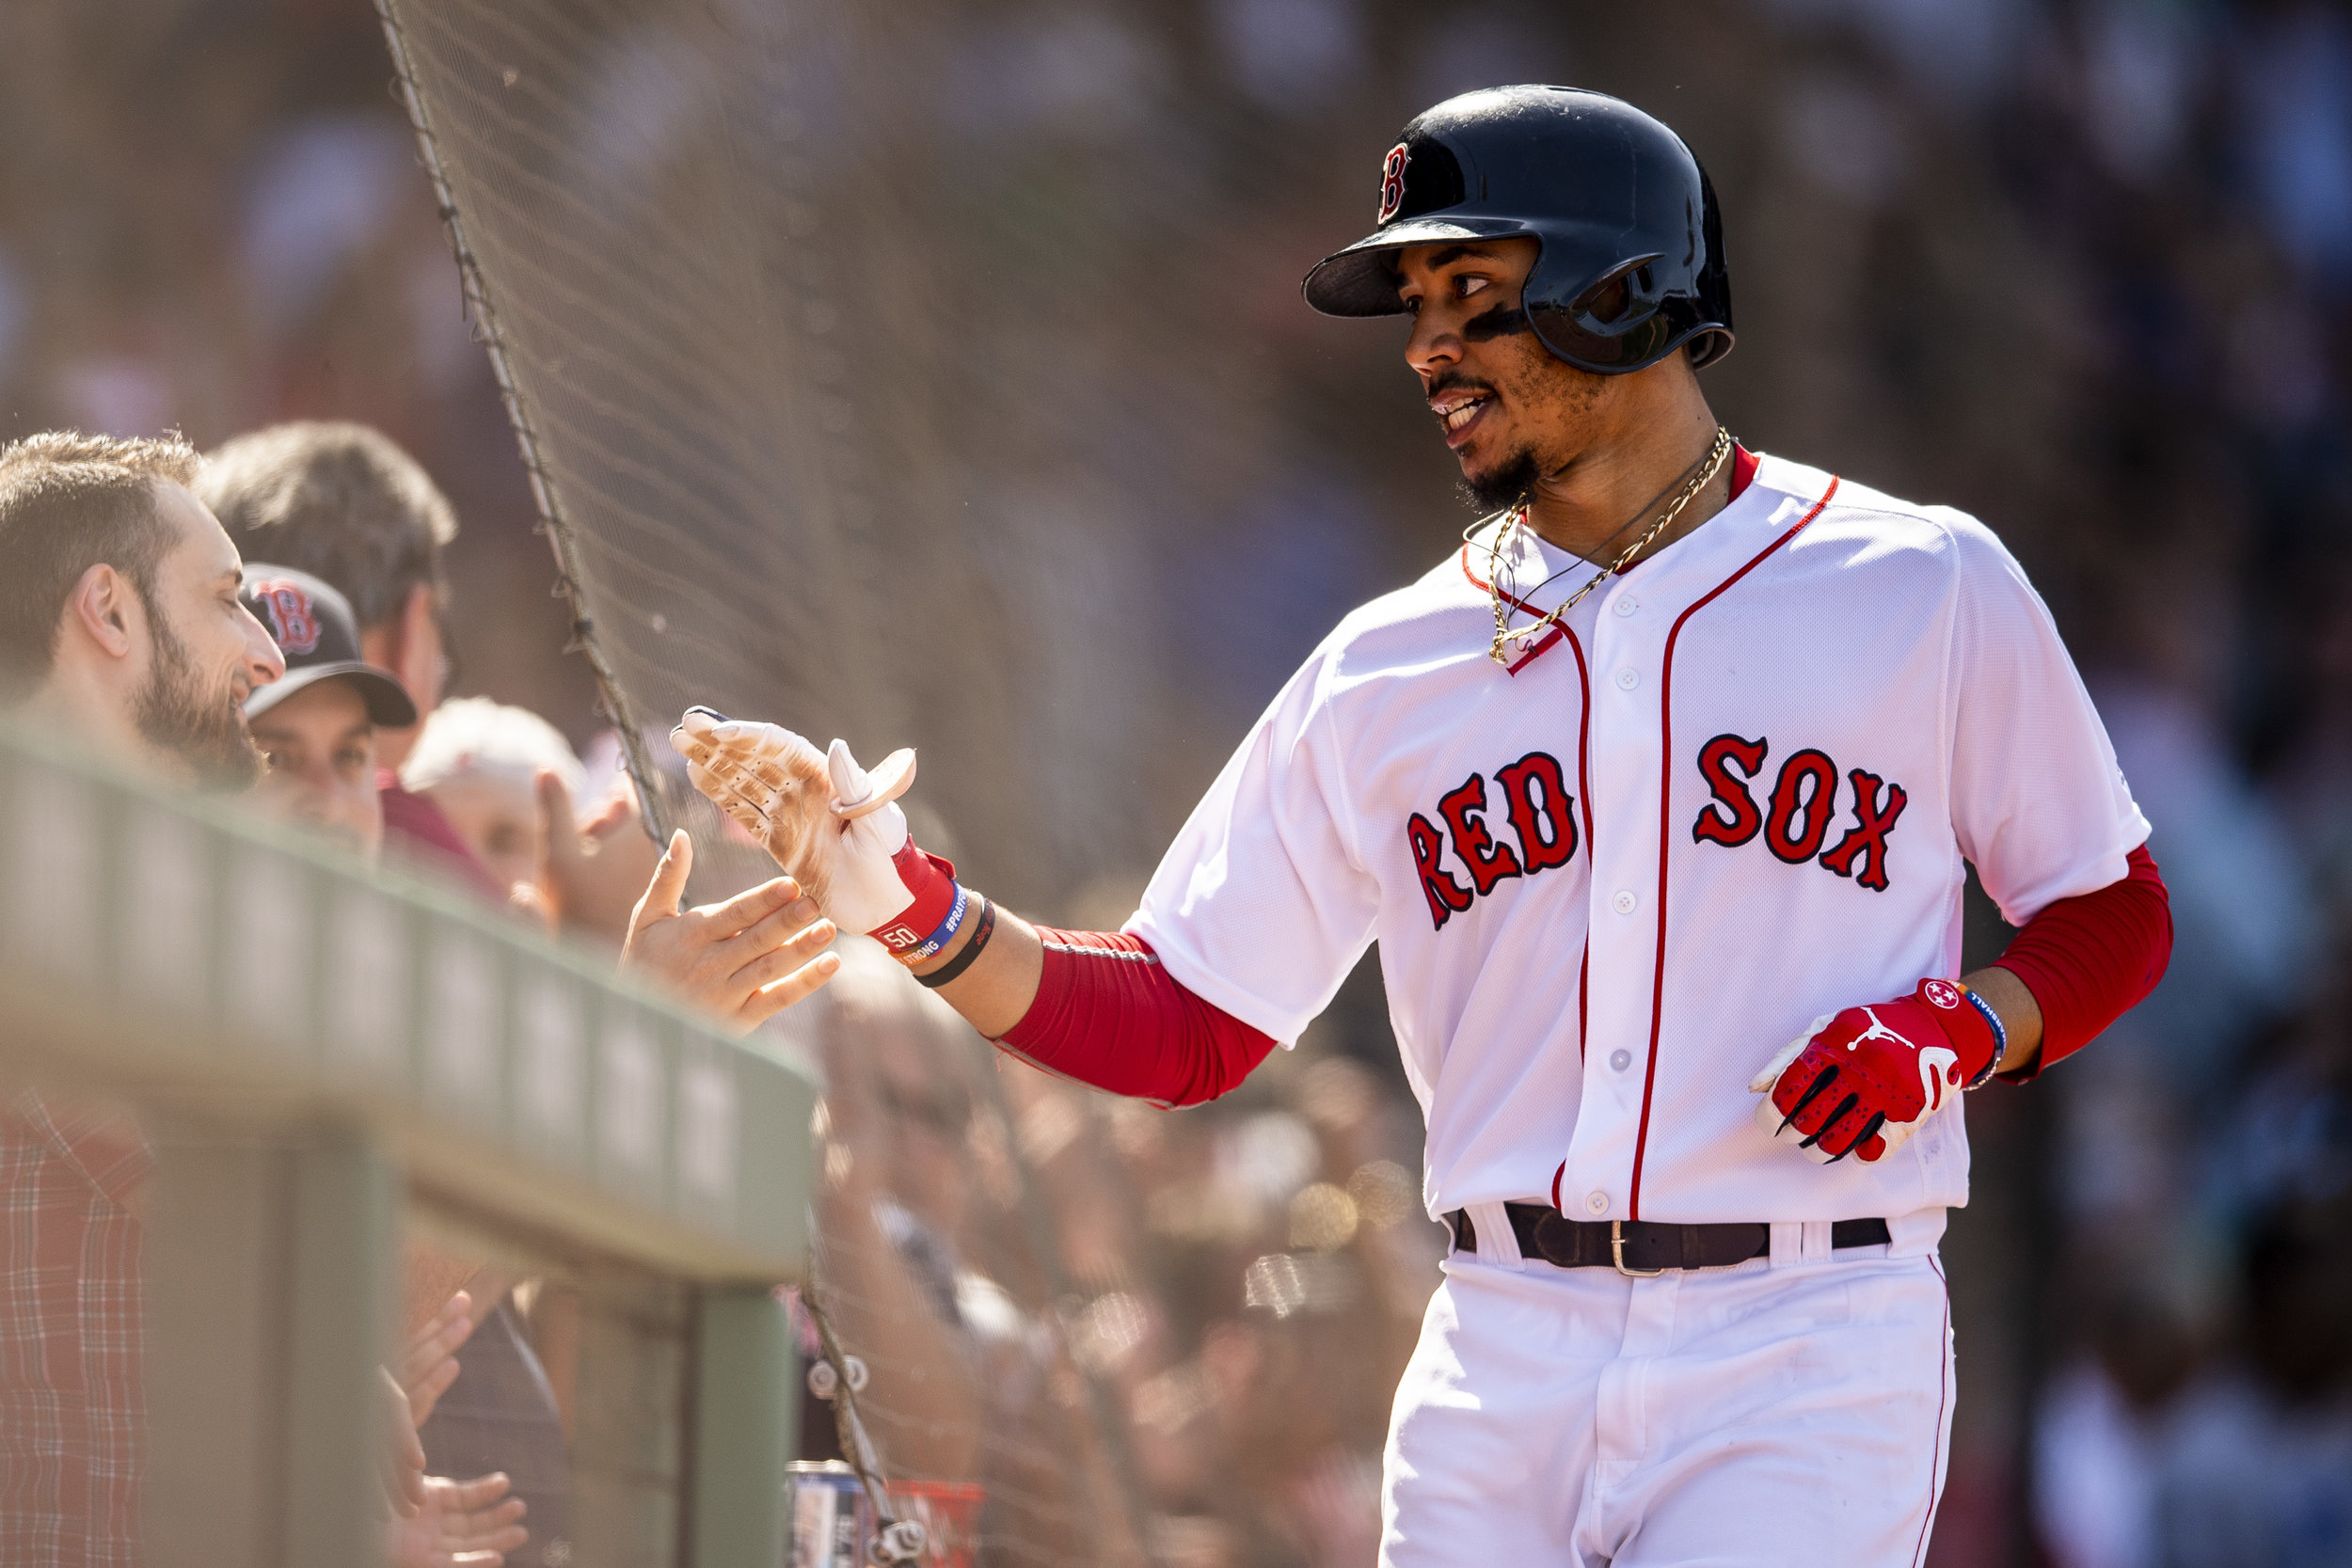 May 2, 2018, Boston, MA: Boston Red Sox outfielder Mookie Betts high fives fans after hitting his third home run of the game as the Boston Red Sox face the Kansas City Royals at Fenway Park in Boston, Massachusetts Wednesday, May 2, 2018. (Photo by Matthew Thomas/Boston Red Sox)